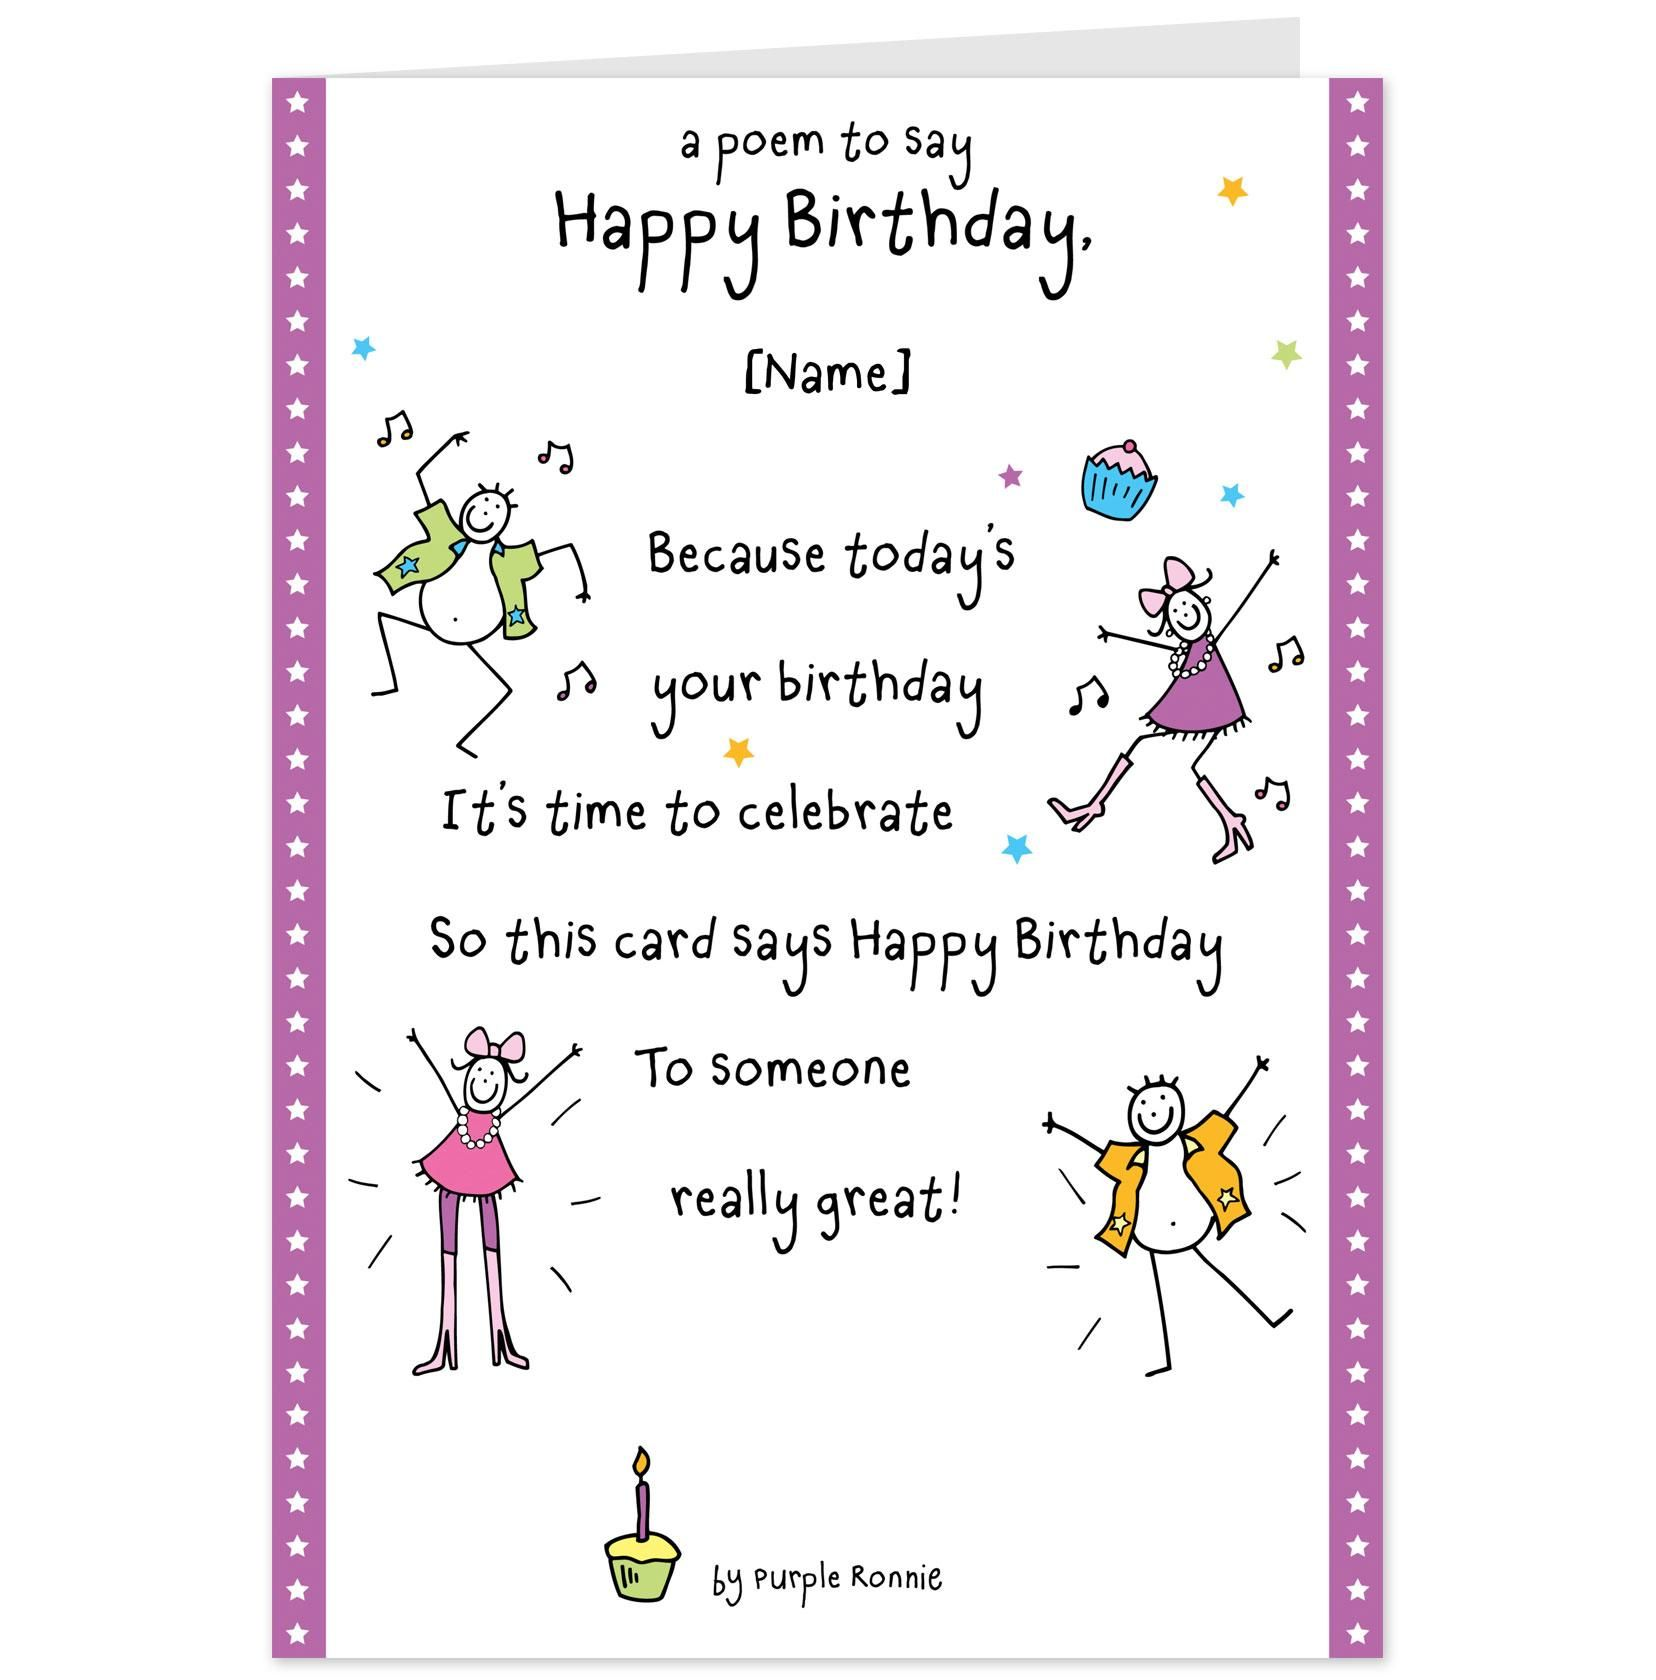 Funny Happy Birthday Poems For Husband: Poem To Say Happy Birthday. Nicewishes.com